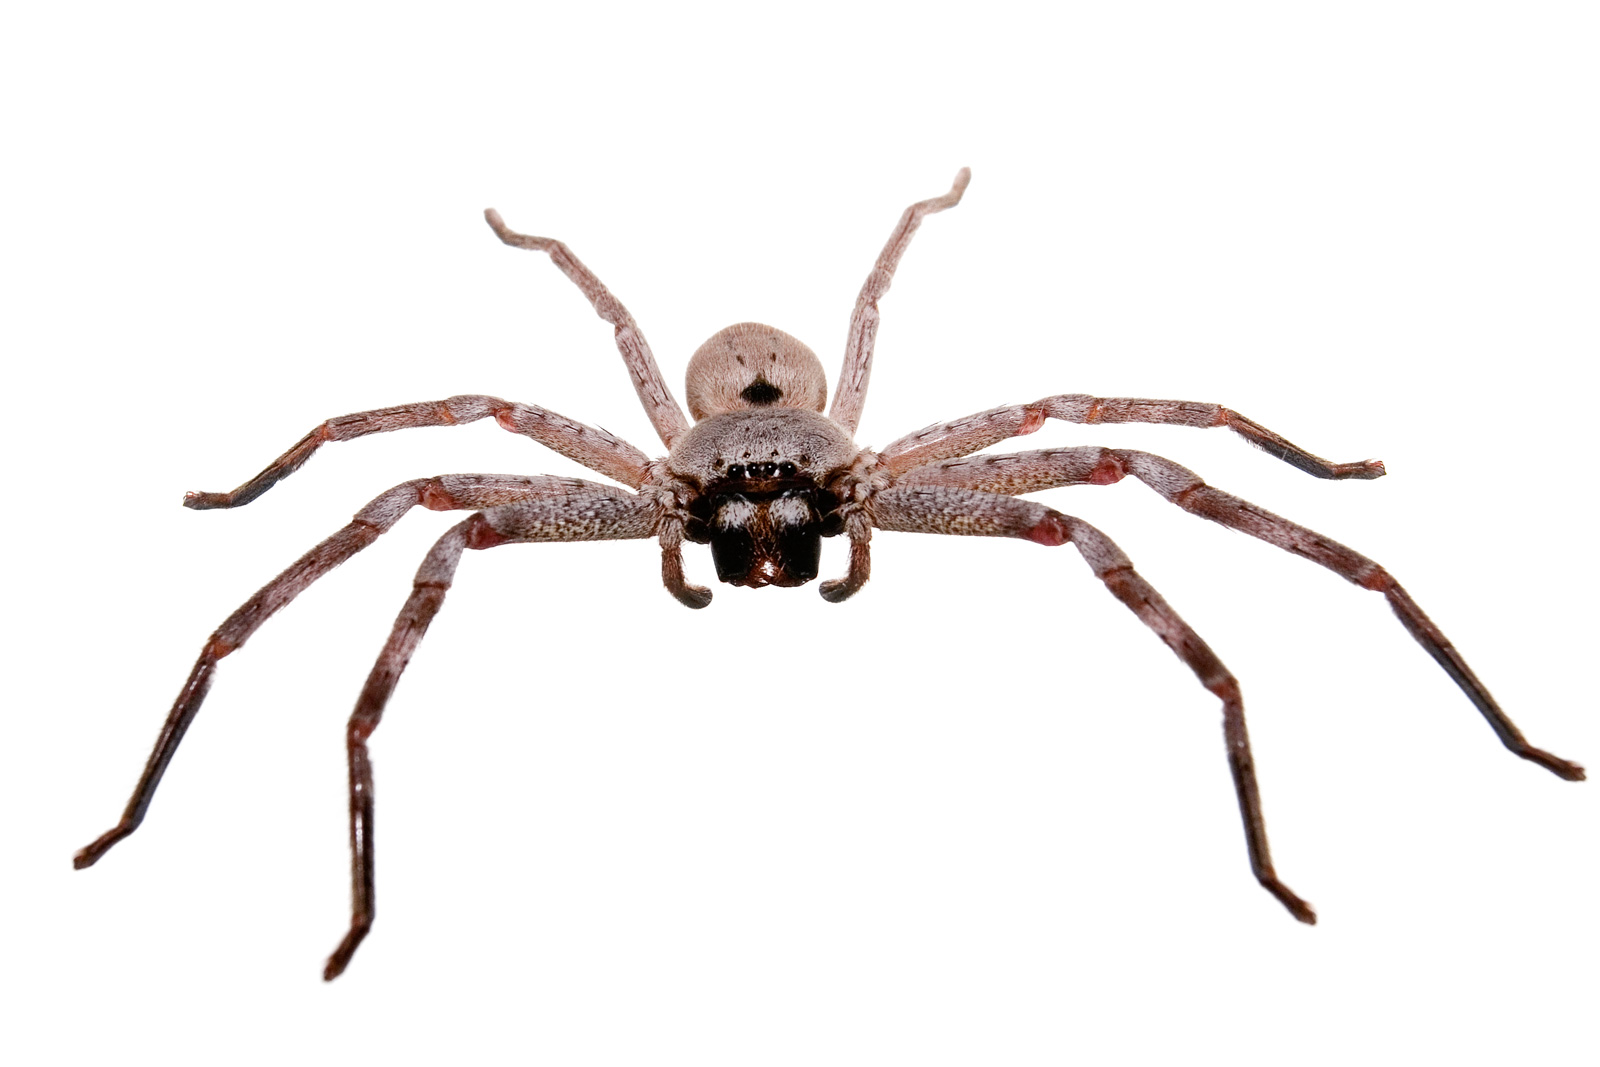 http://upload.wikimedia.org/wikipedia/commons/e/ea/Huntsman_spider_white_bg03.jpg